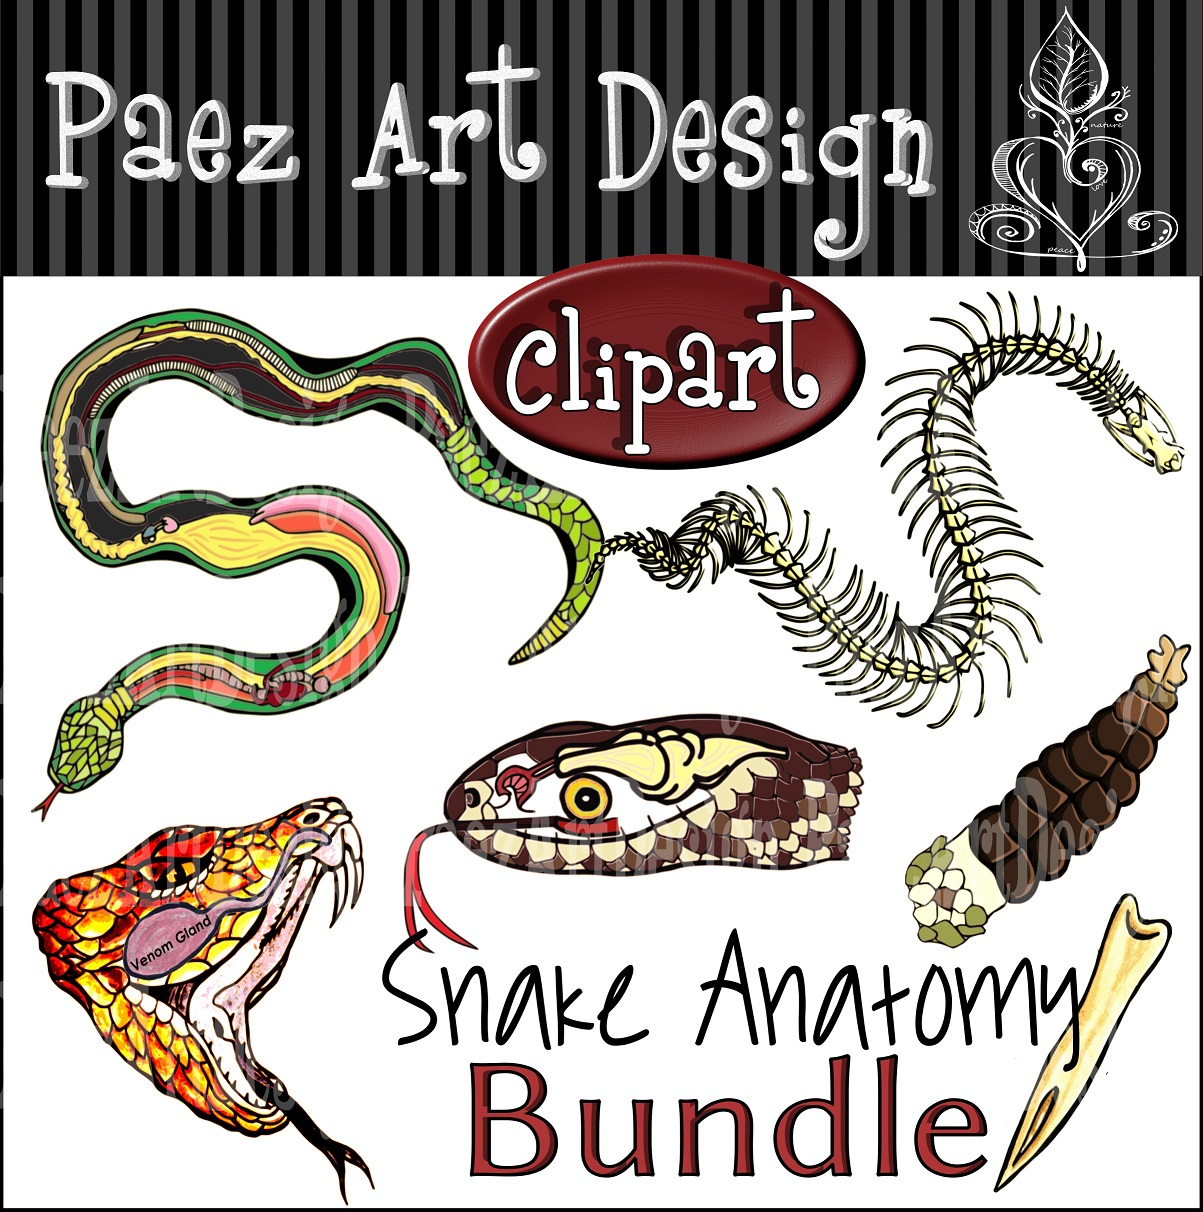 Snake Anatomy Clipart Bundle from Paez Art Design